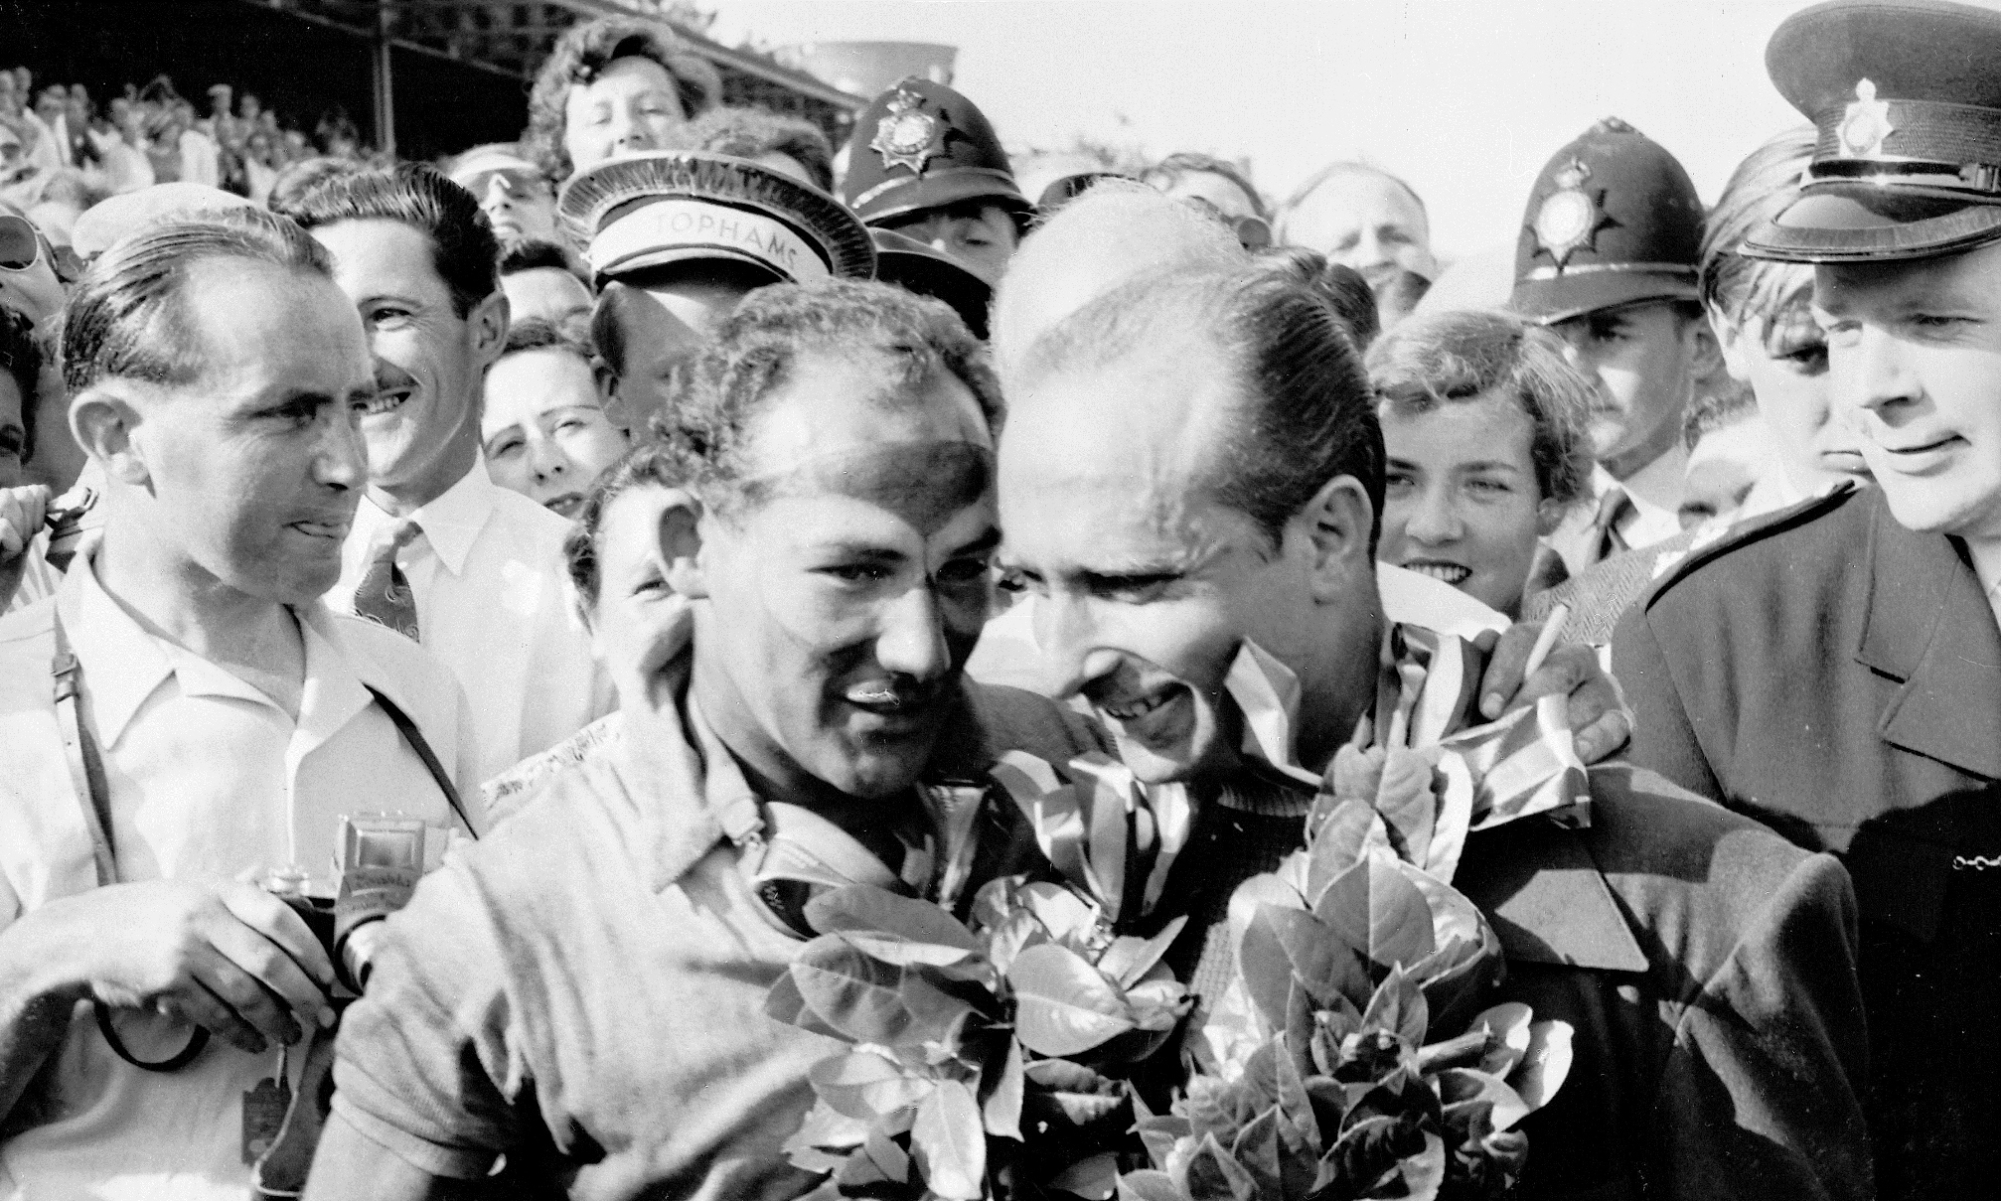 1955 British Grand Prix winner Stirling Moss and runner-up Juan Manuel Fangio on the winners' podium.